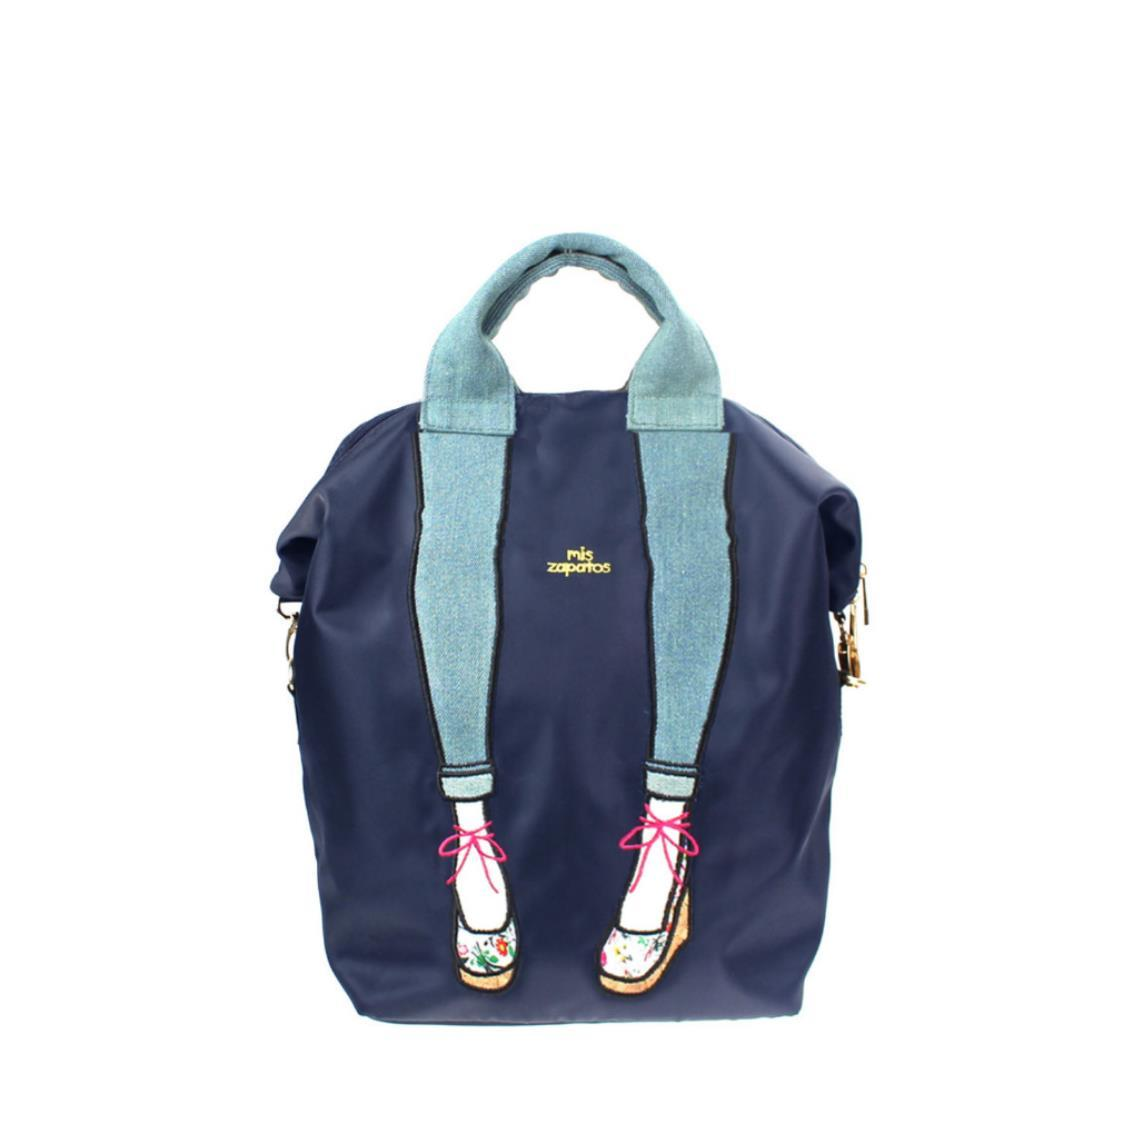 3-Way Use Jeans with Wedges Backpack Navy